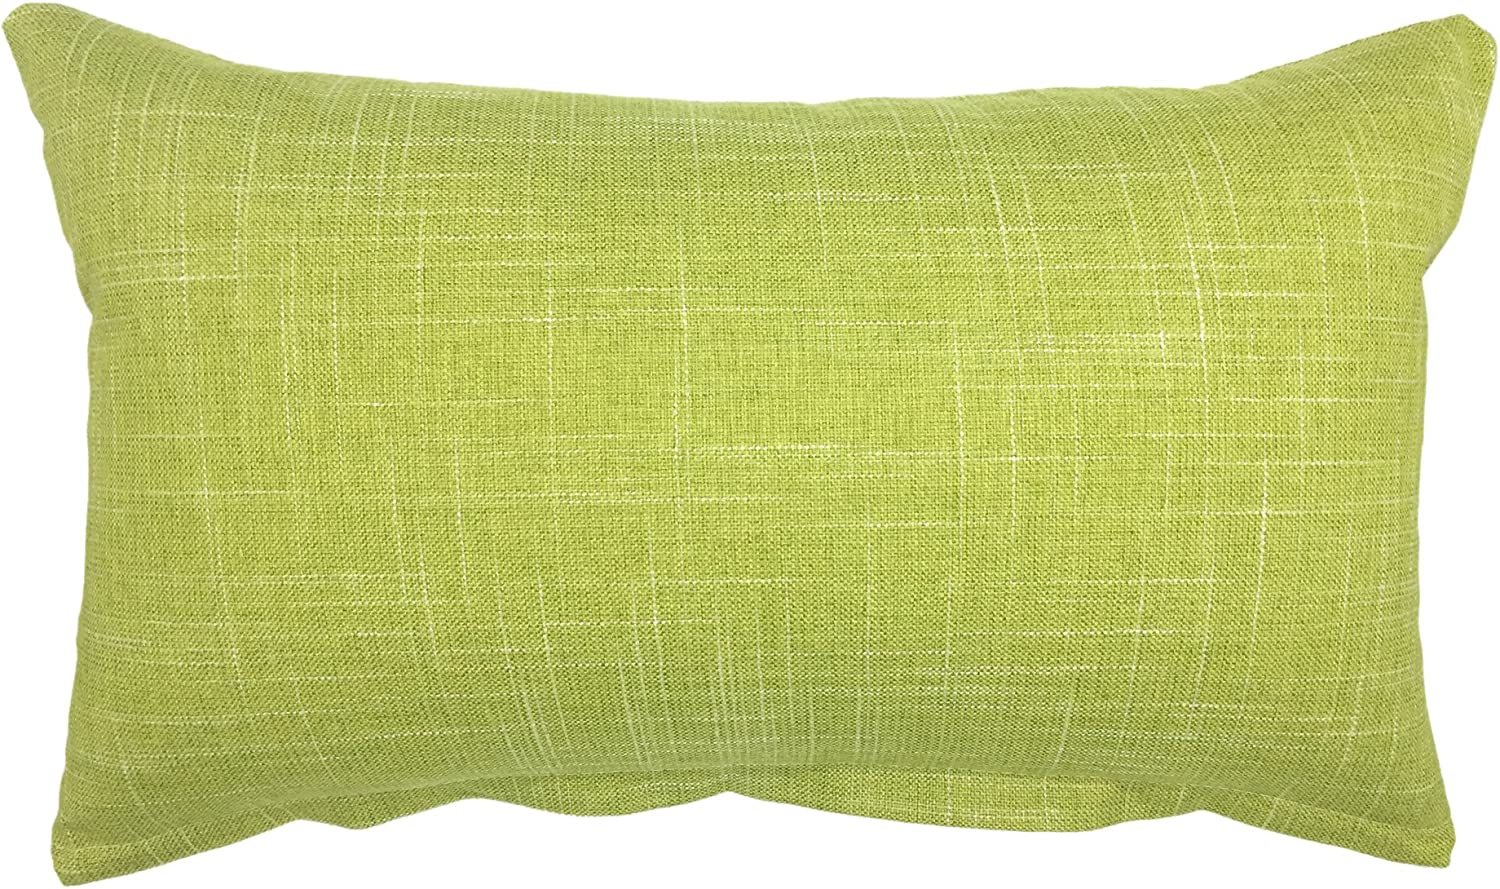 YOUR SMILE Solid Color Oblong Rectangle Decorative Cotton Linen Throw Pillow Case Cushion Cover Lumbar Pillowcase for Couch Sofa Bed,12 x 20 Inches,Green